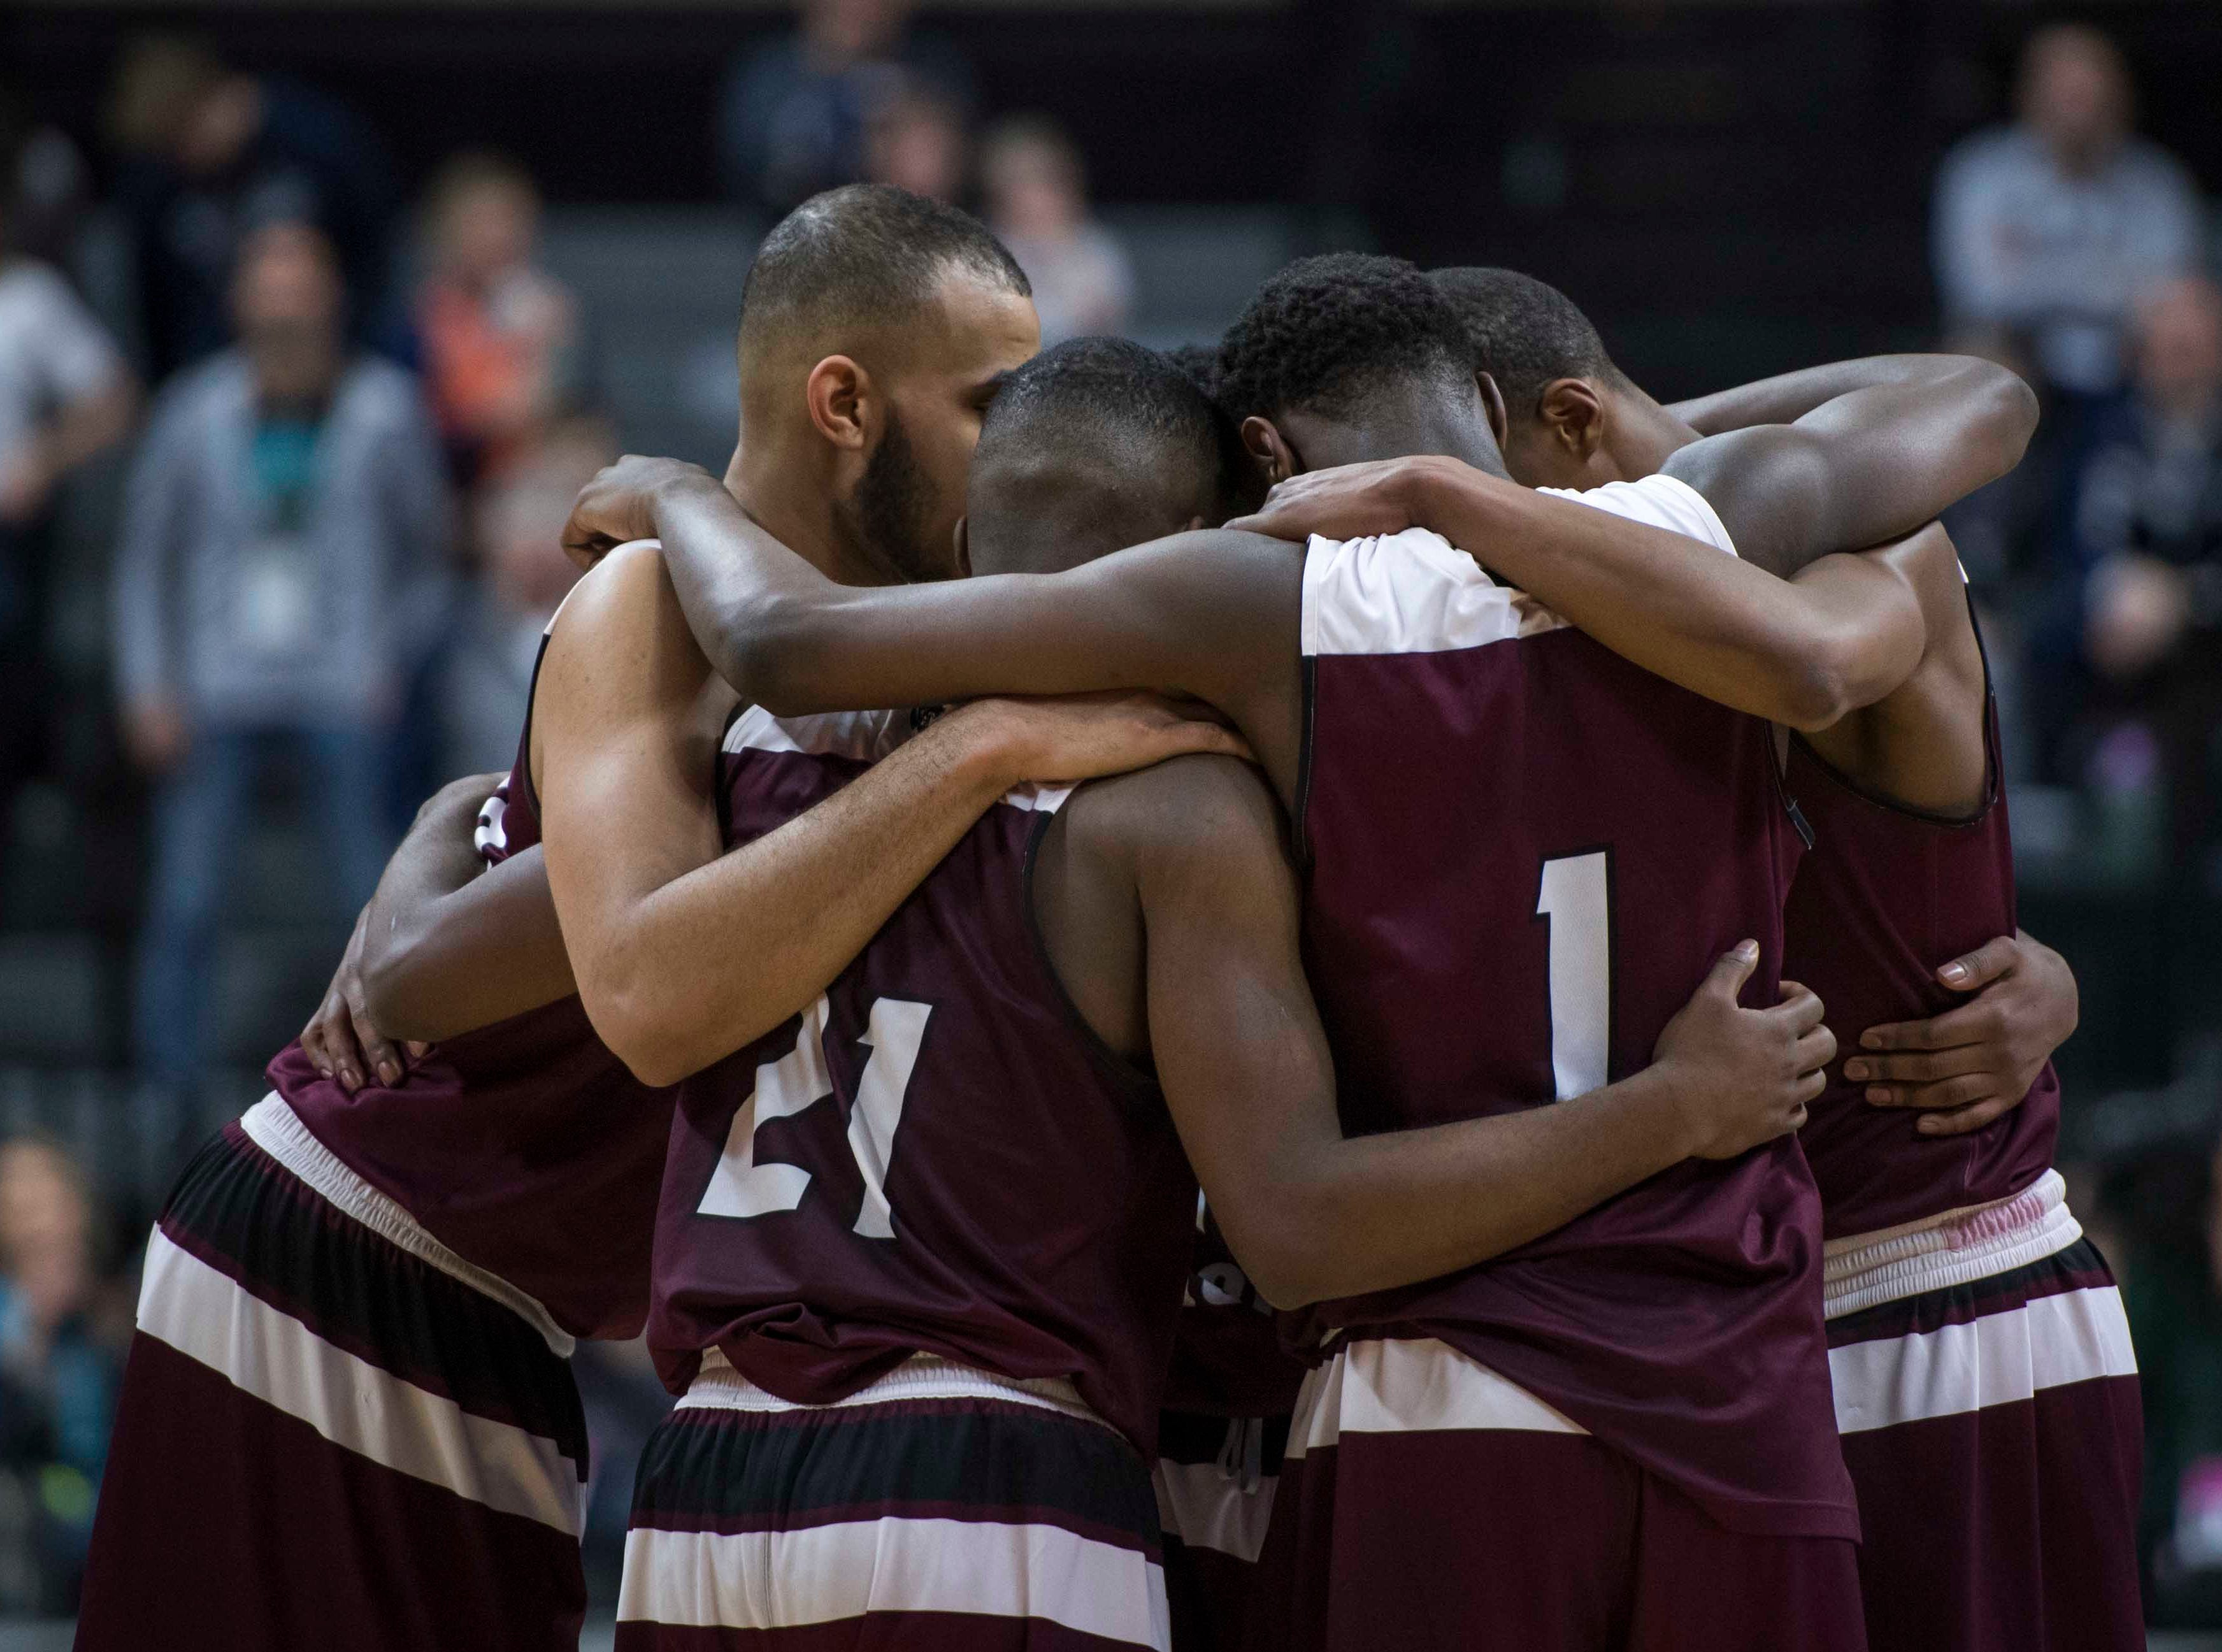 River Rouge players huddle together in the second half.